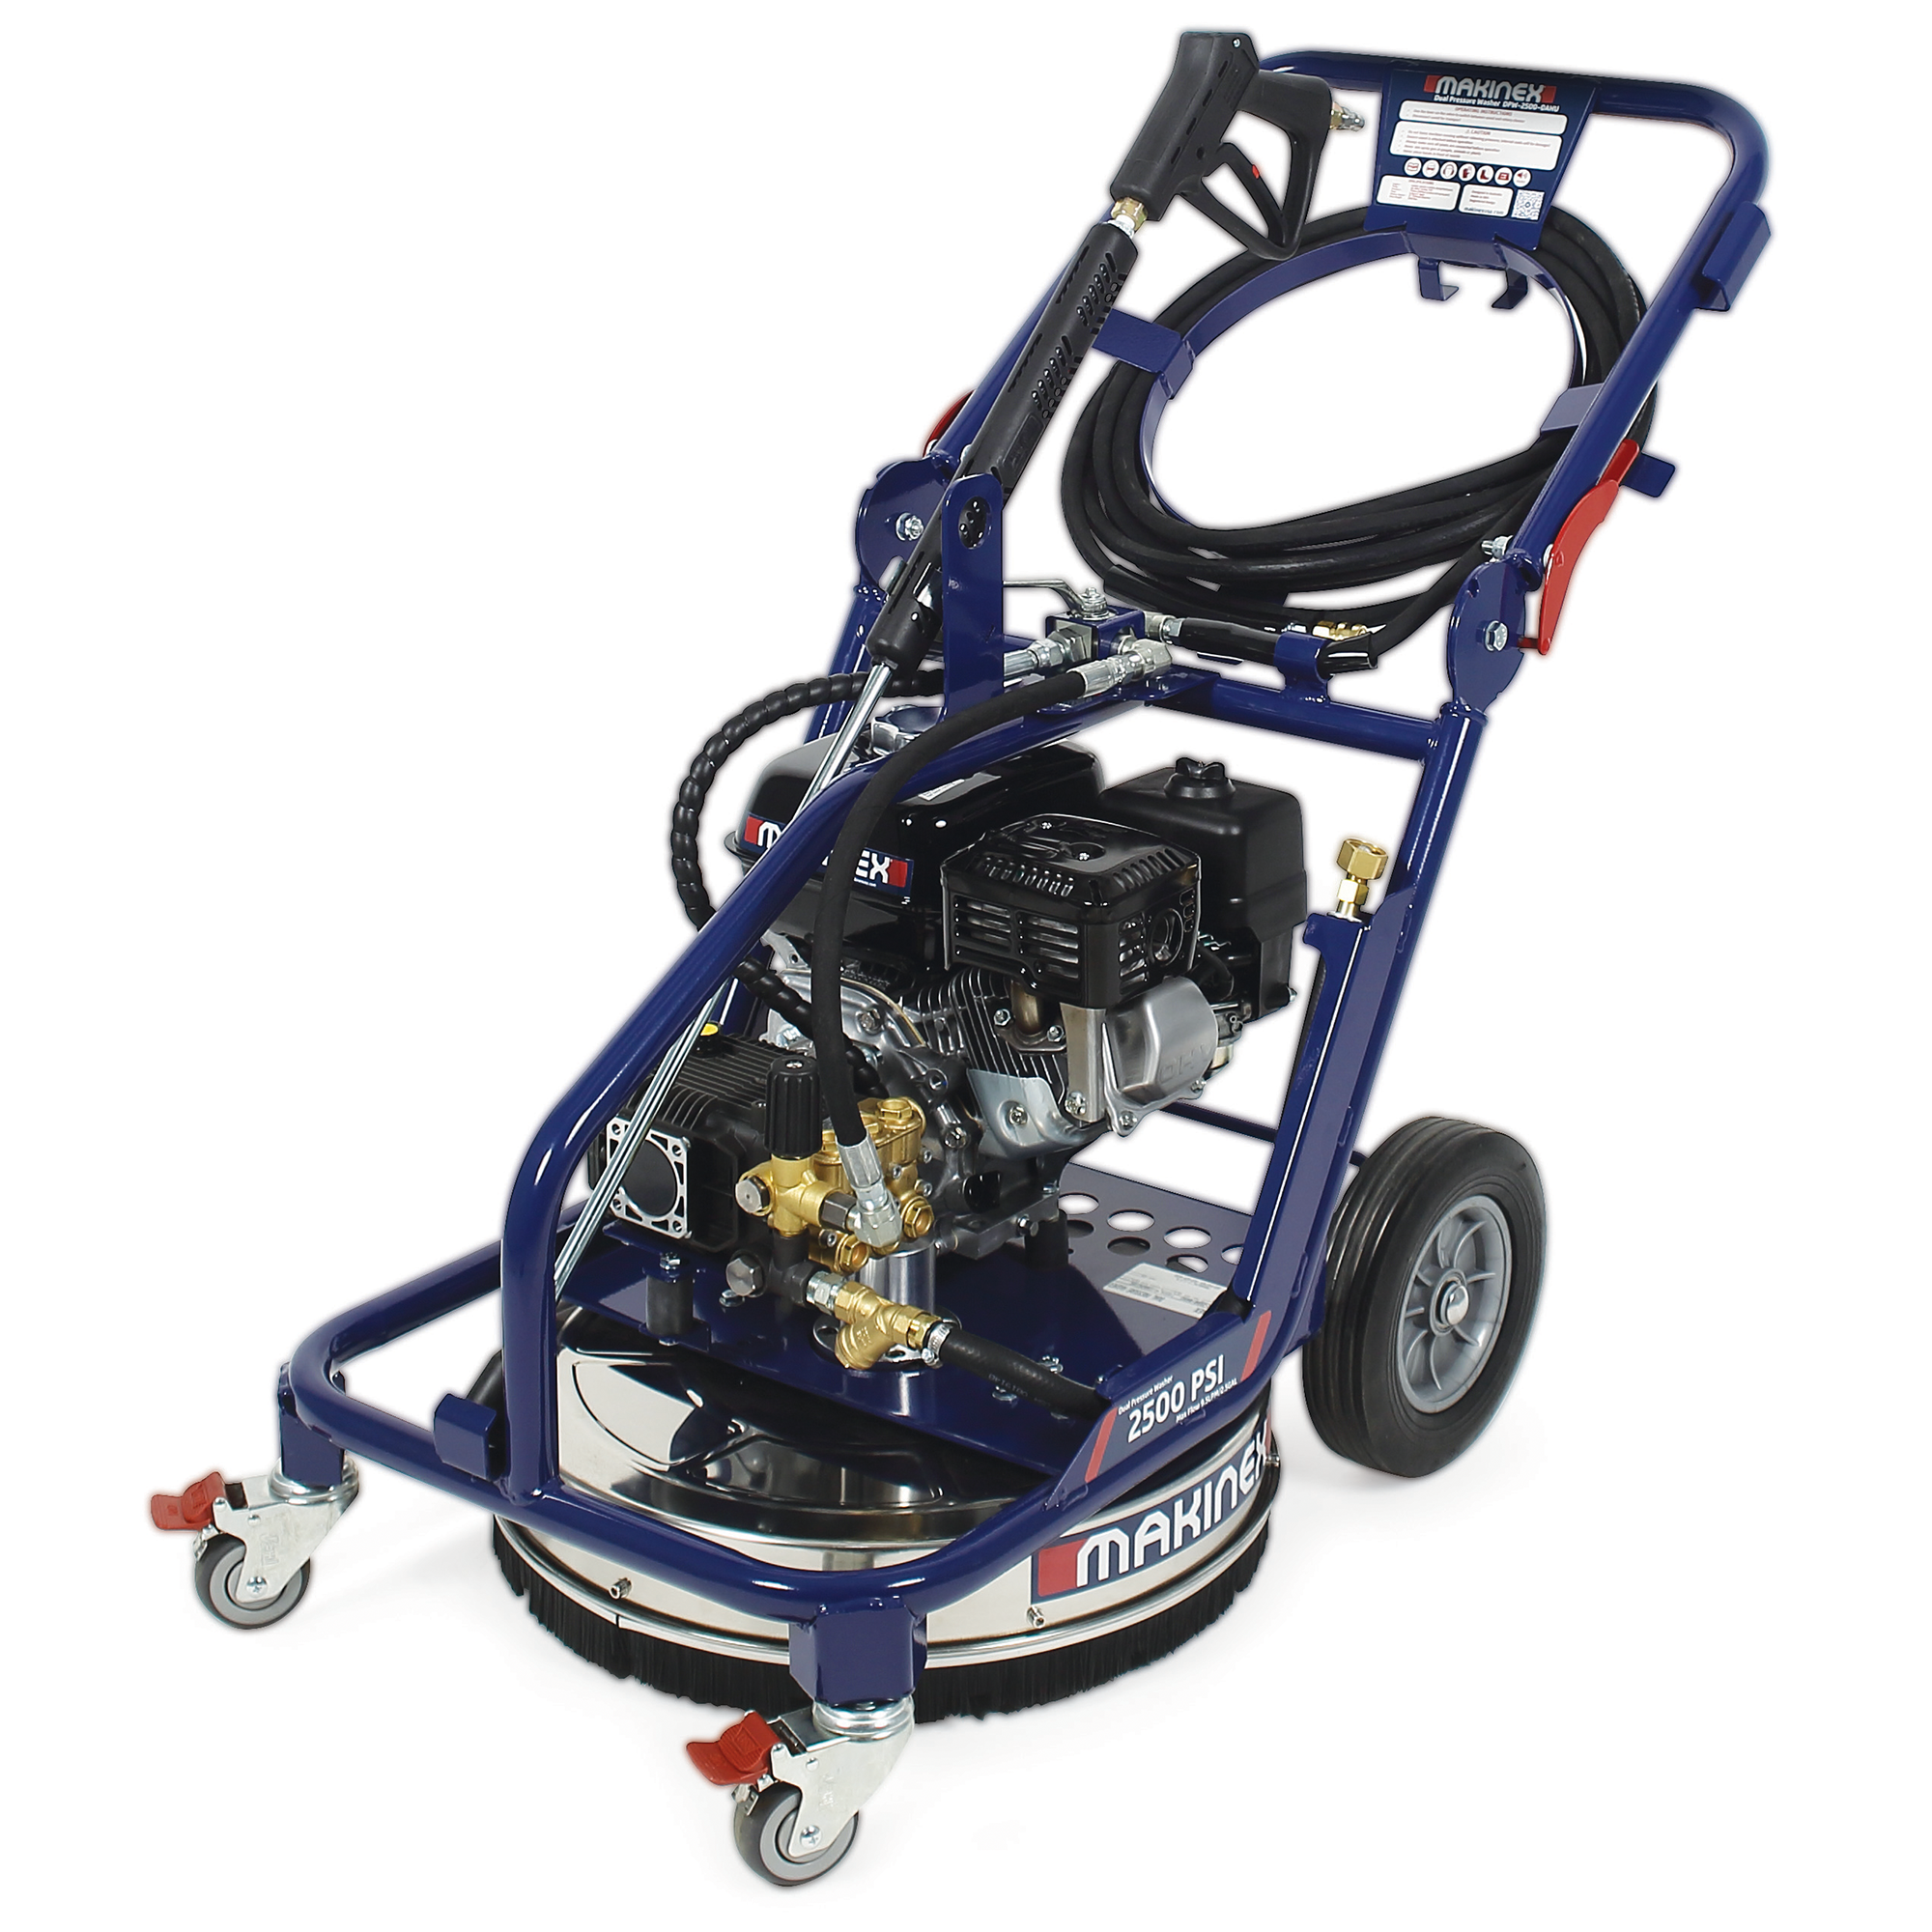 Makinex Dual Pressure Washer (2500 PSI)